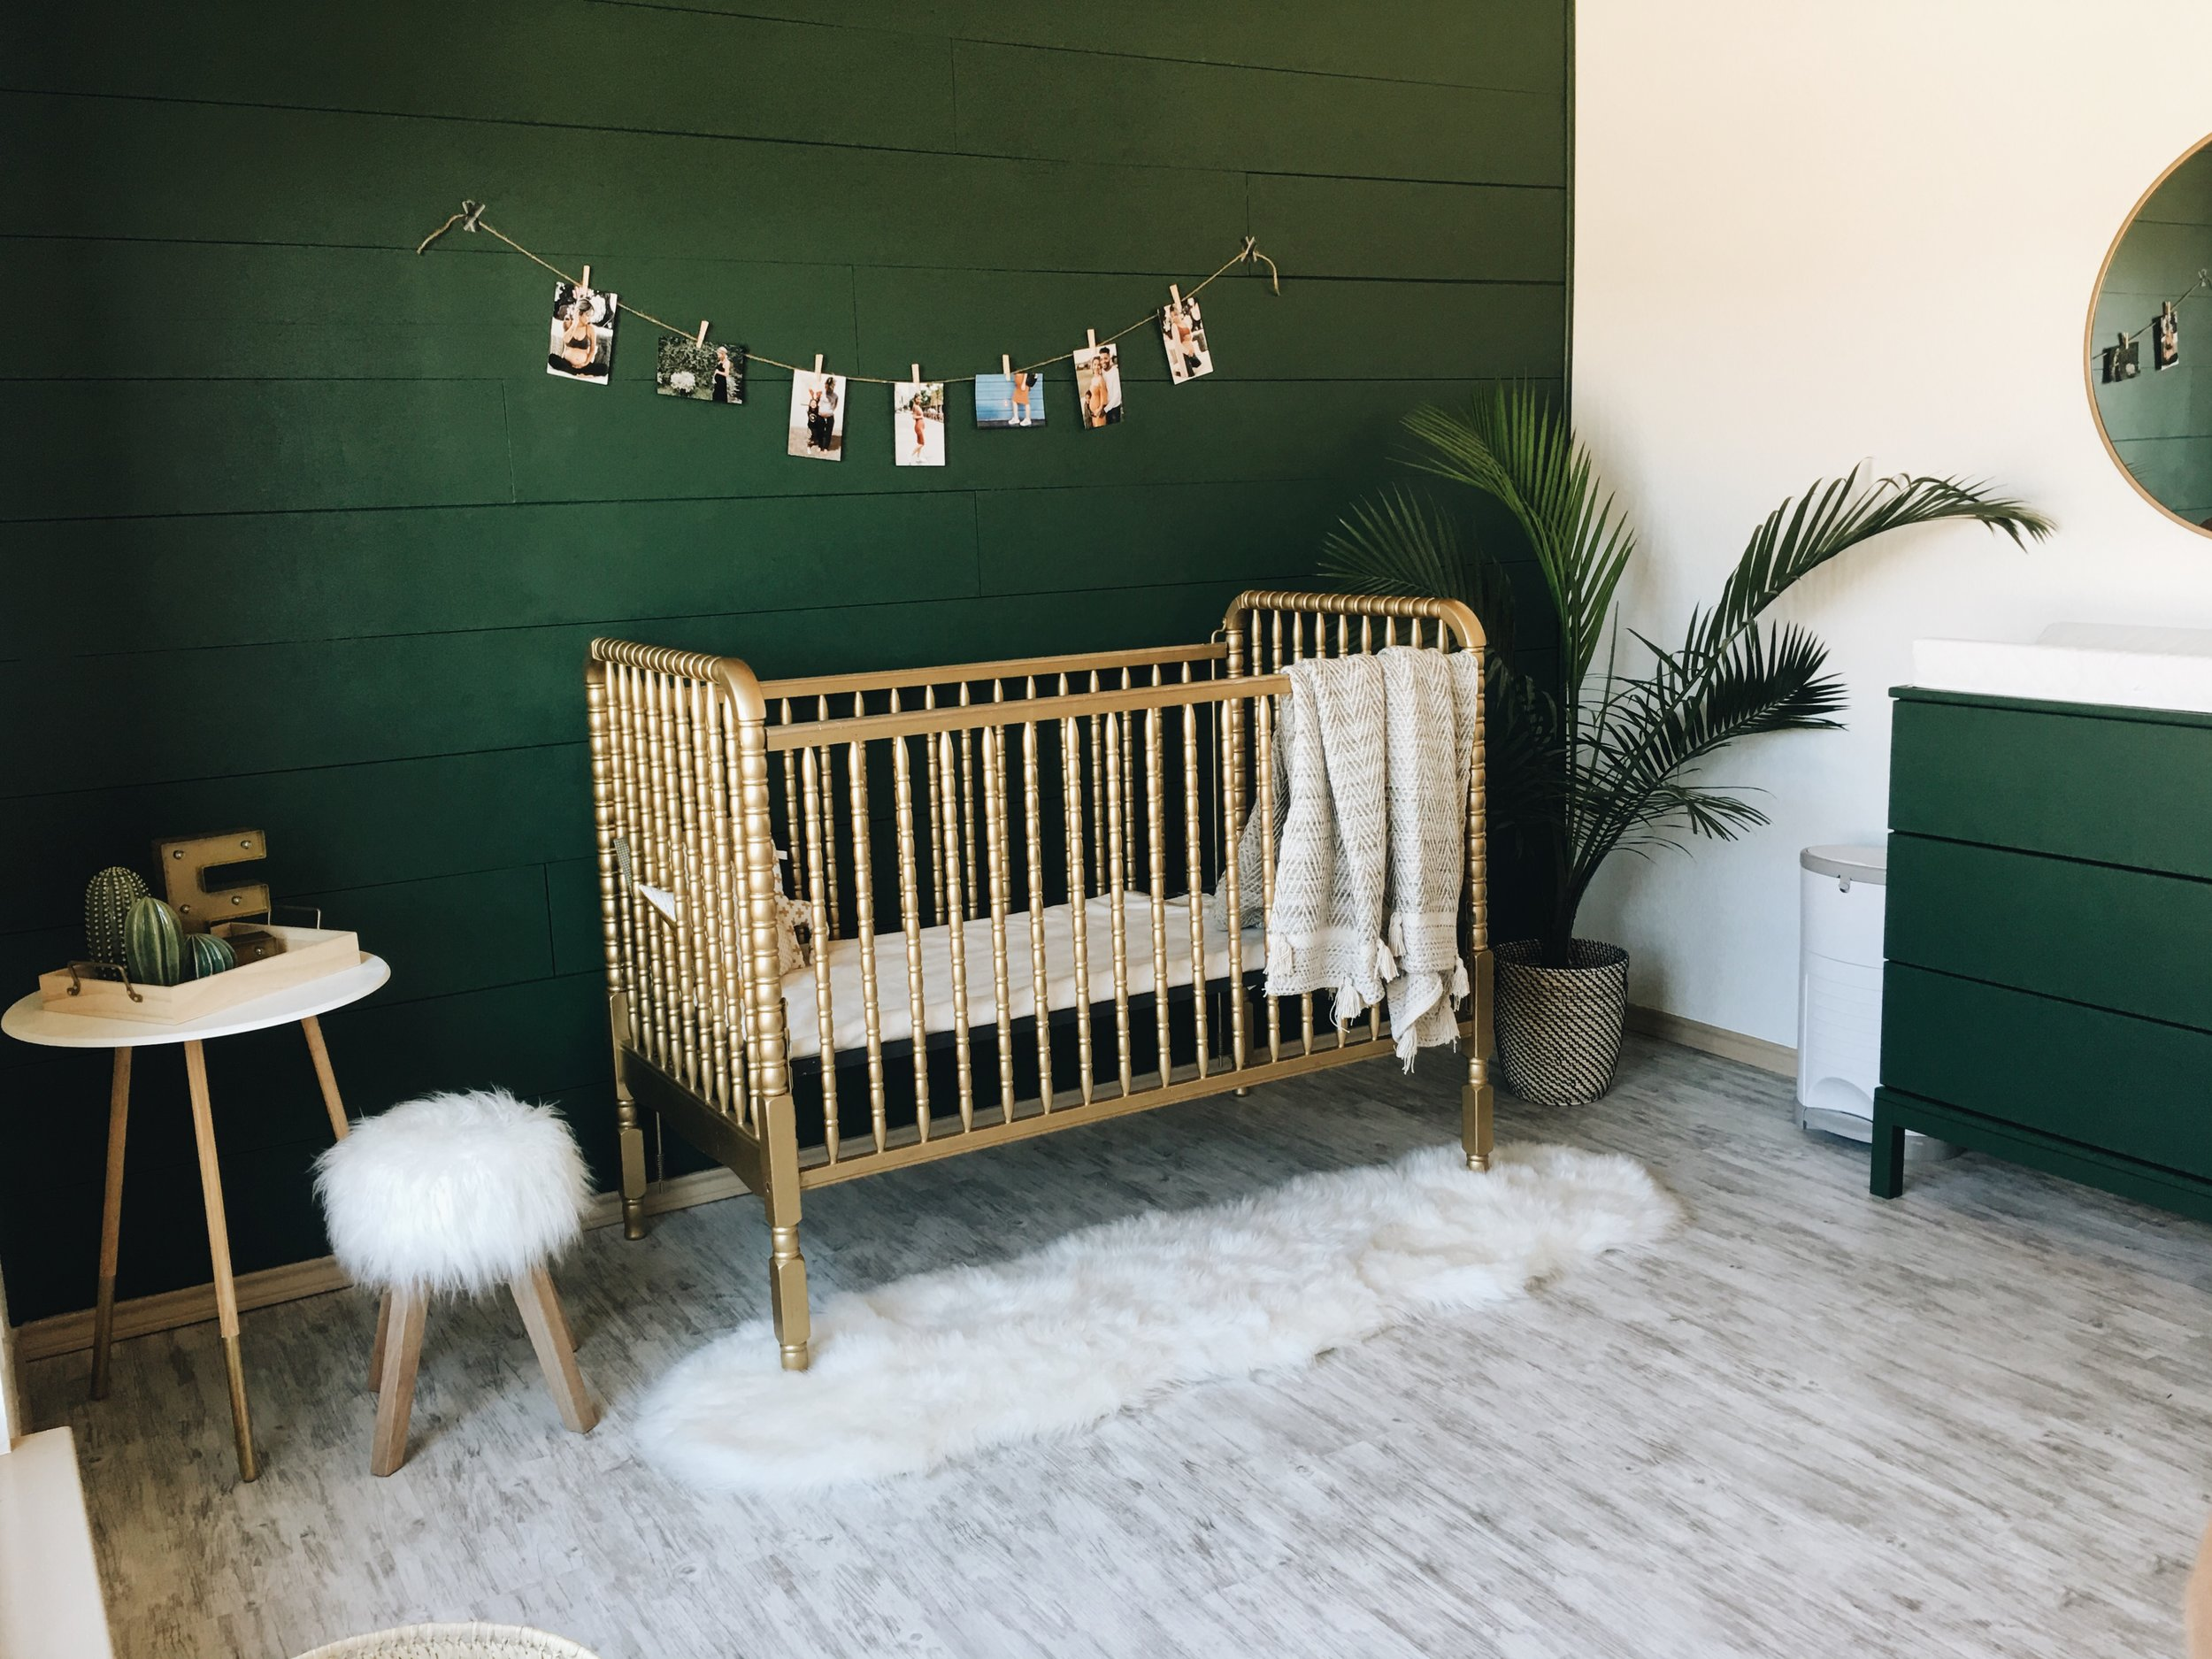 Planked wall painted emerald green & gold painted crib